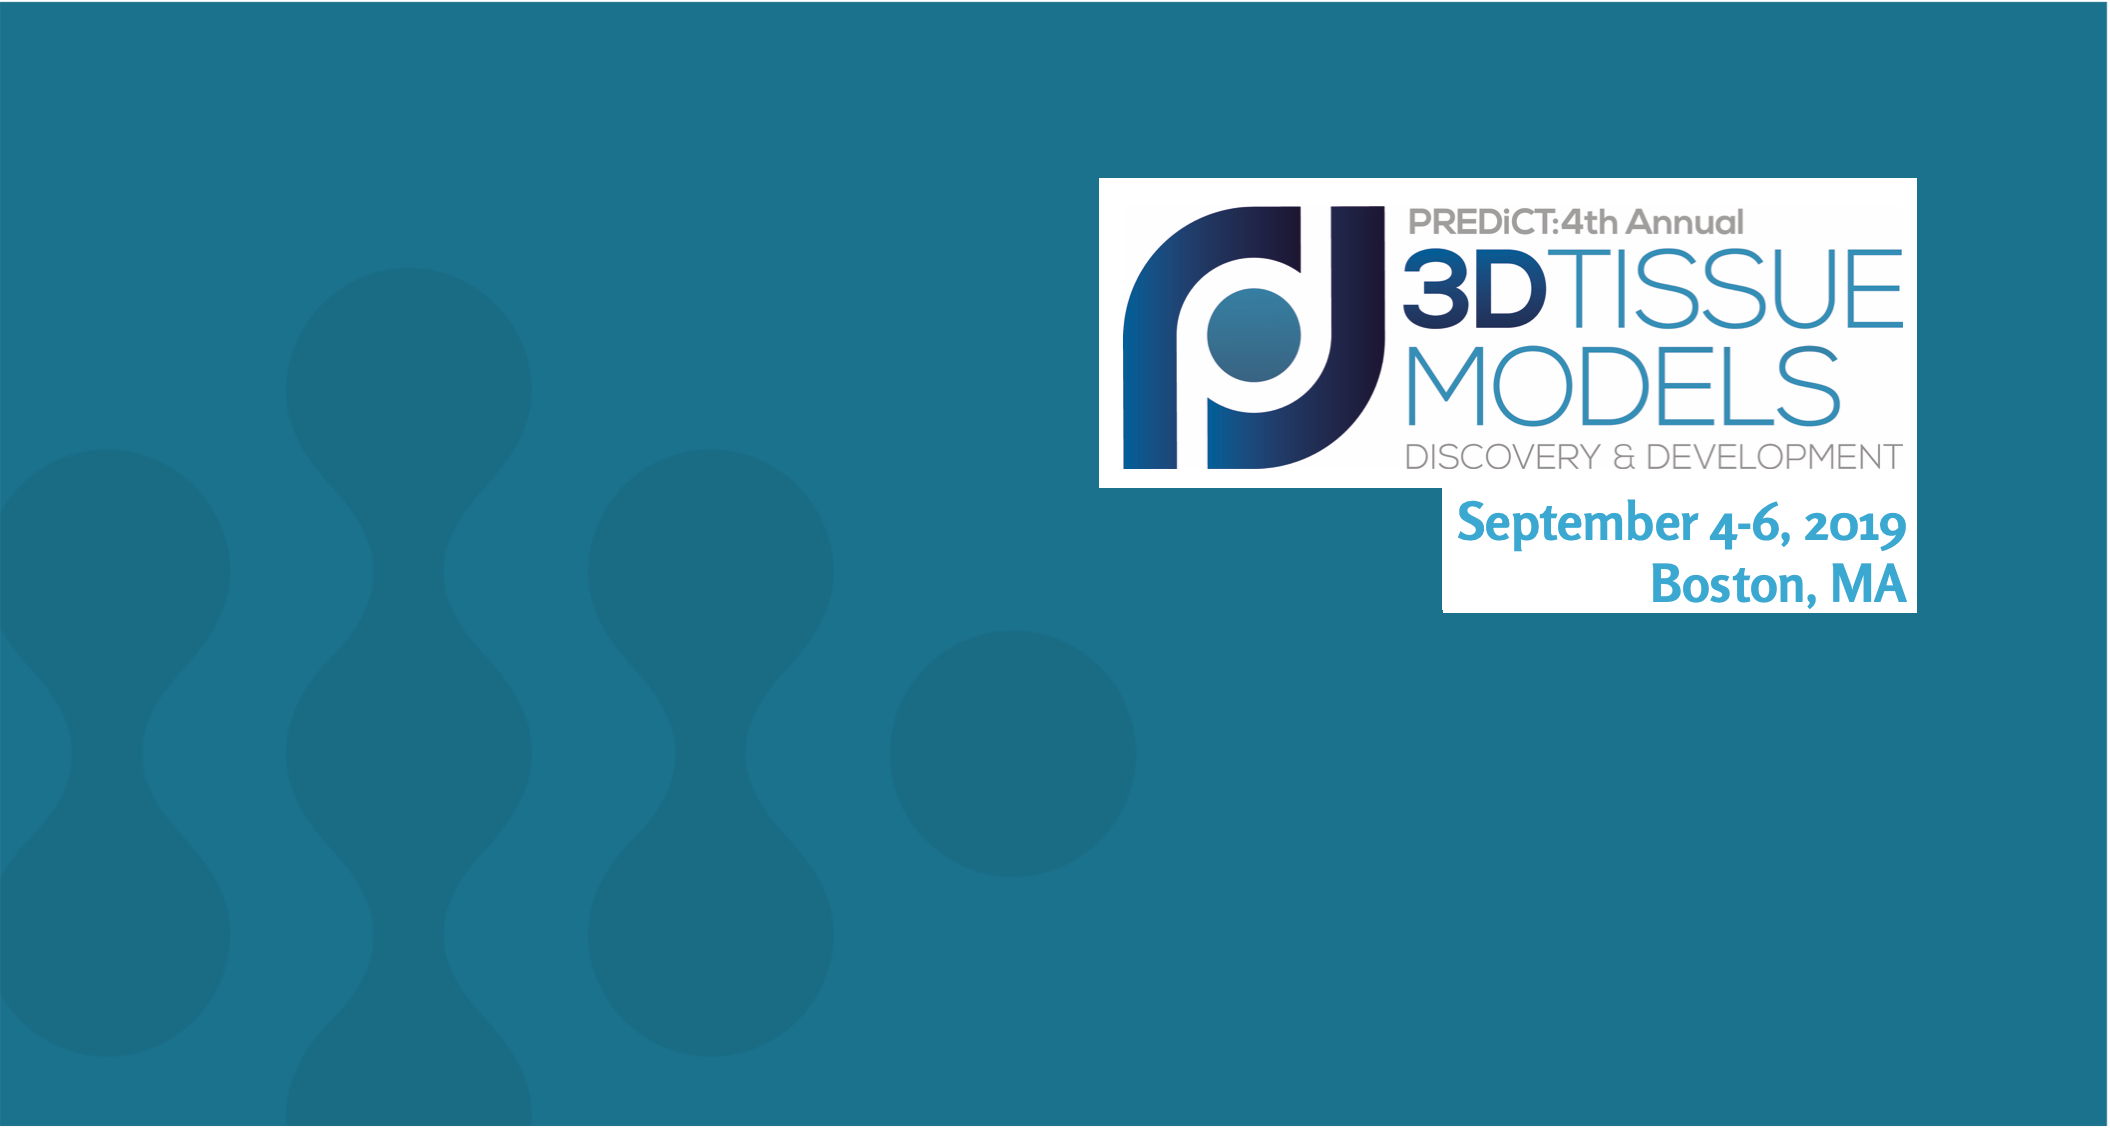 3D Tissue Conference